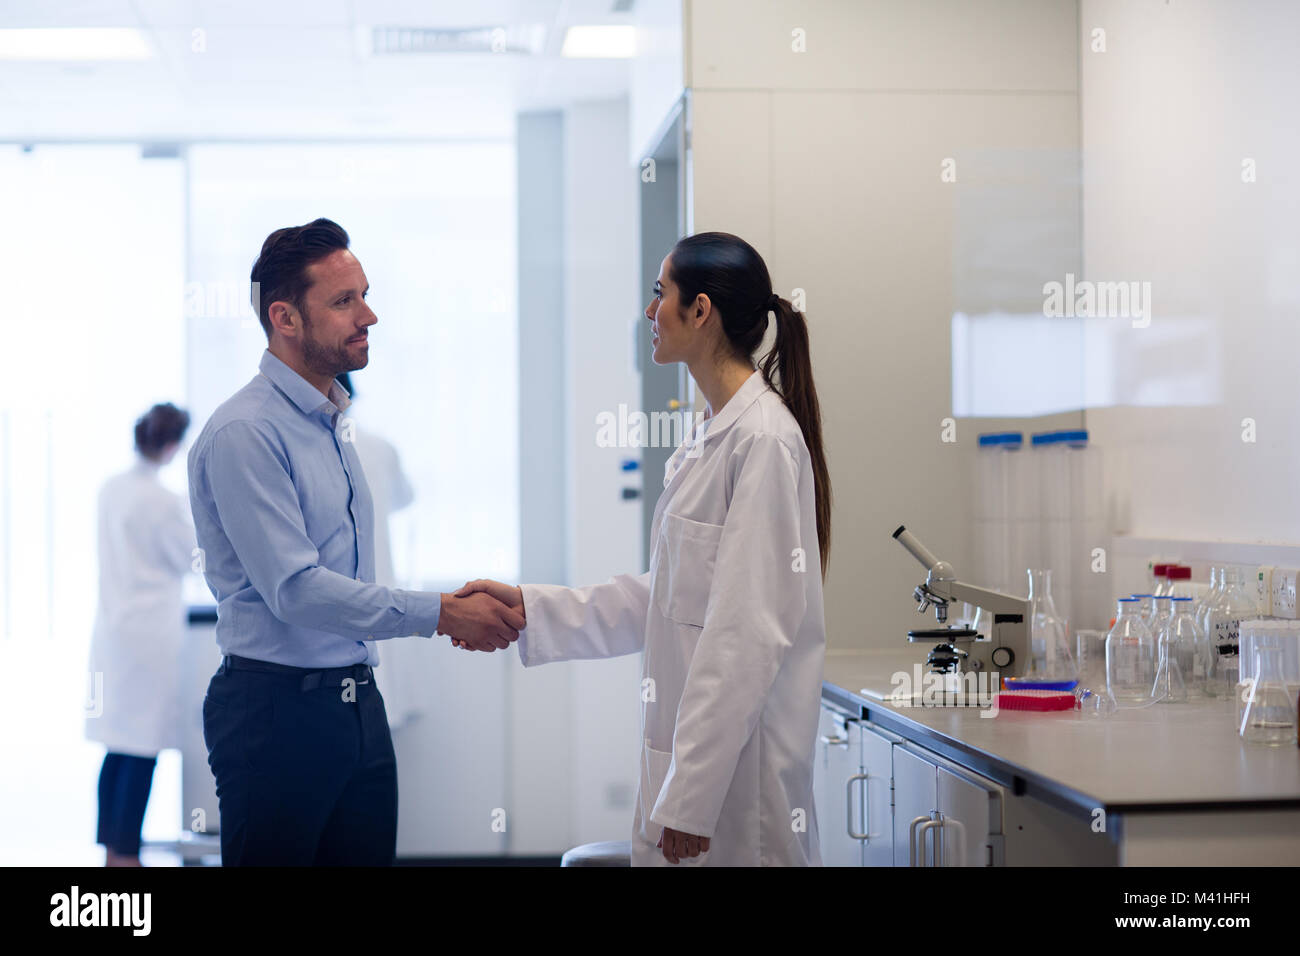 Female Scientist Shaking Hands With Pharmaceutical Sales Rep   Stock Image